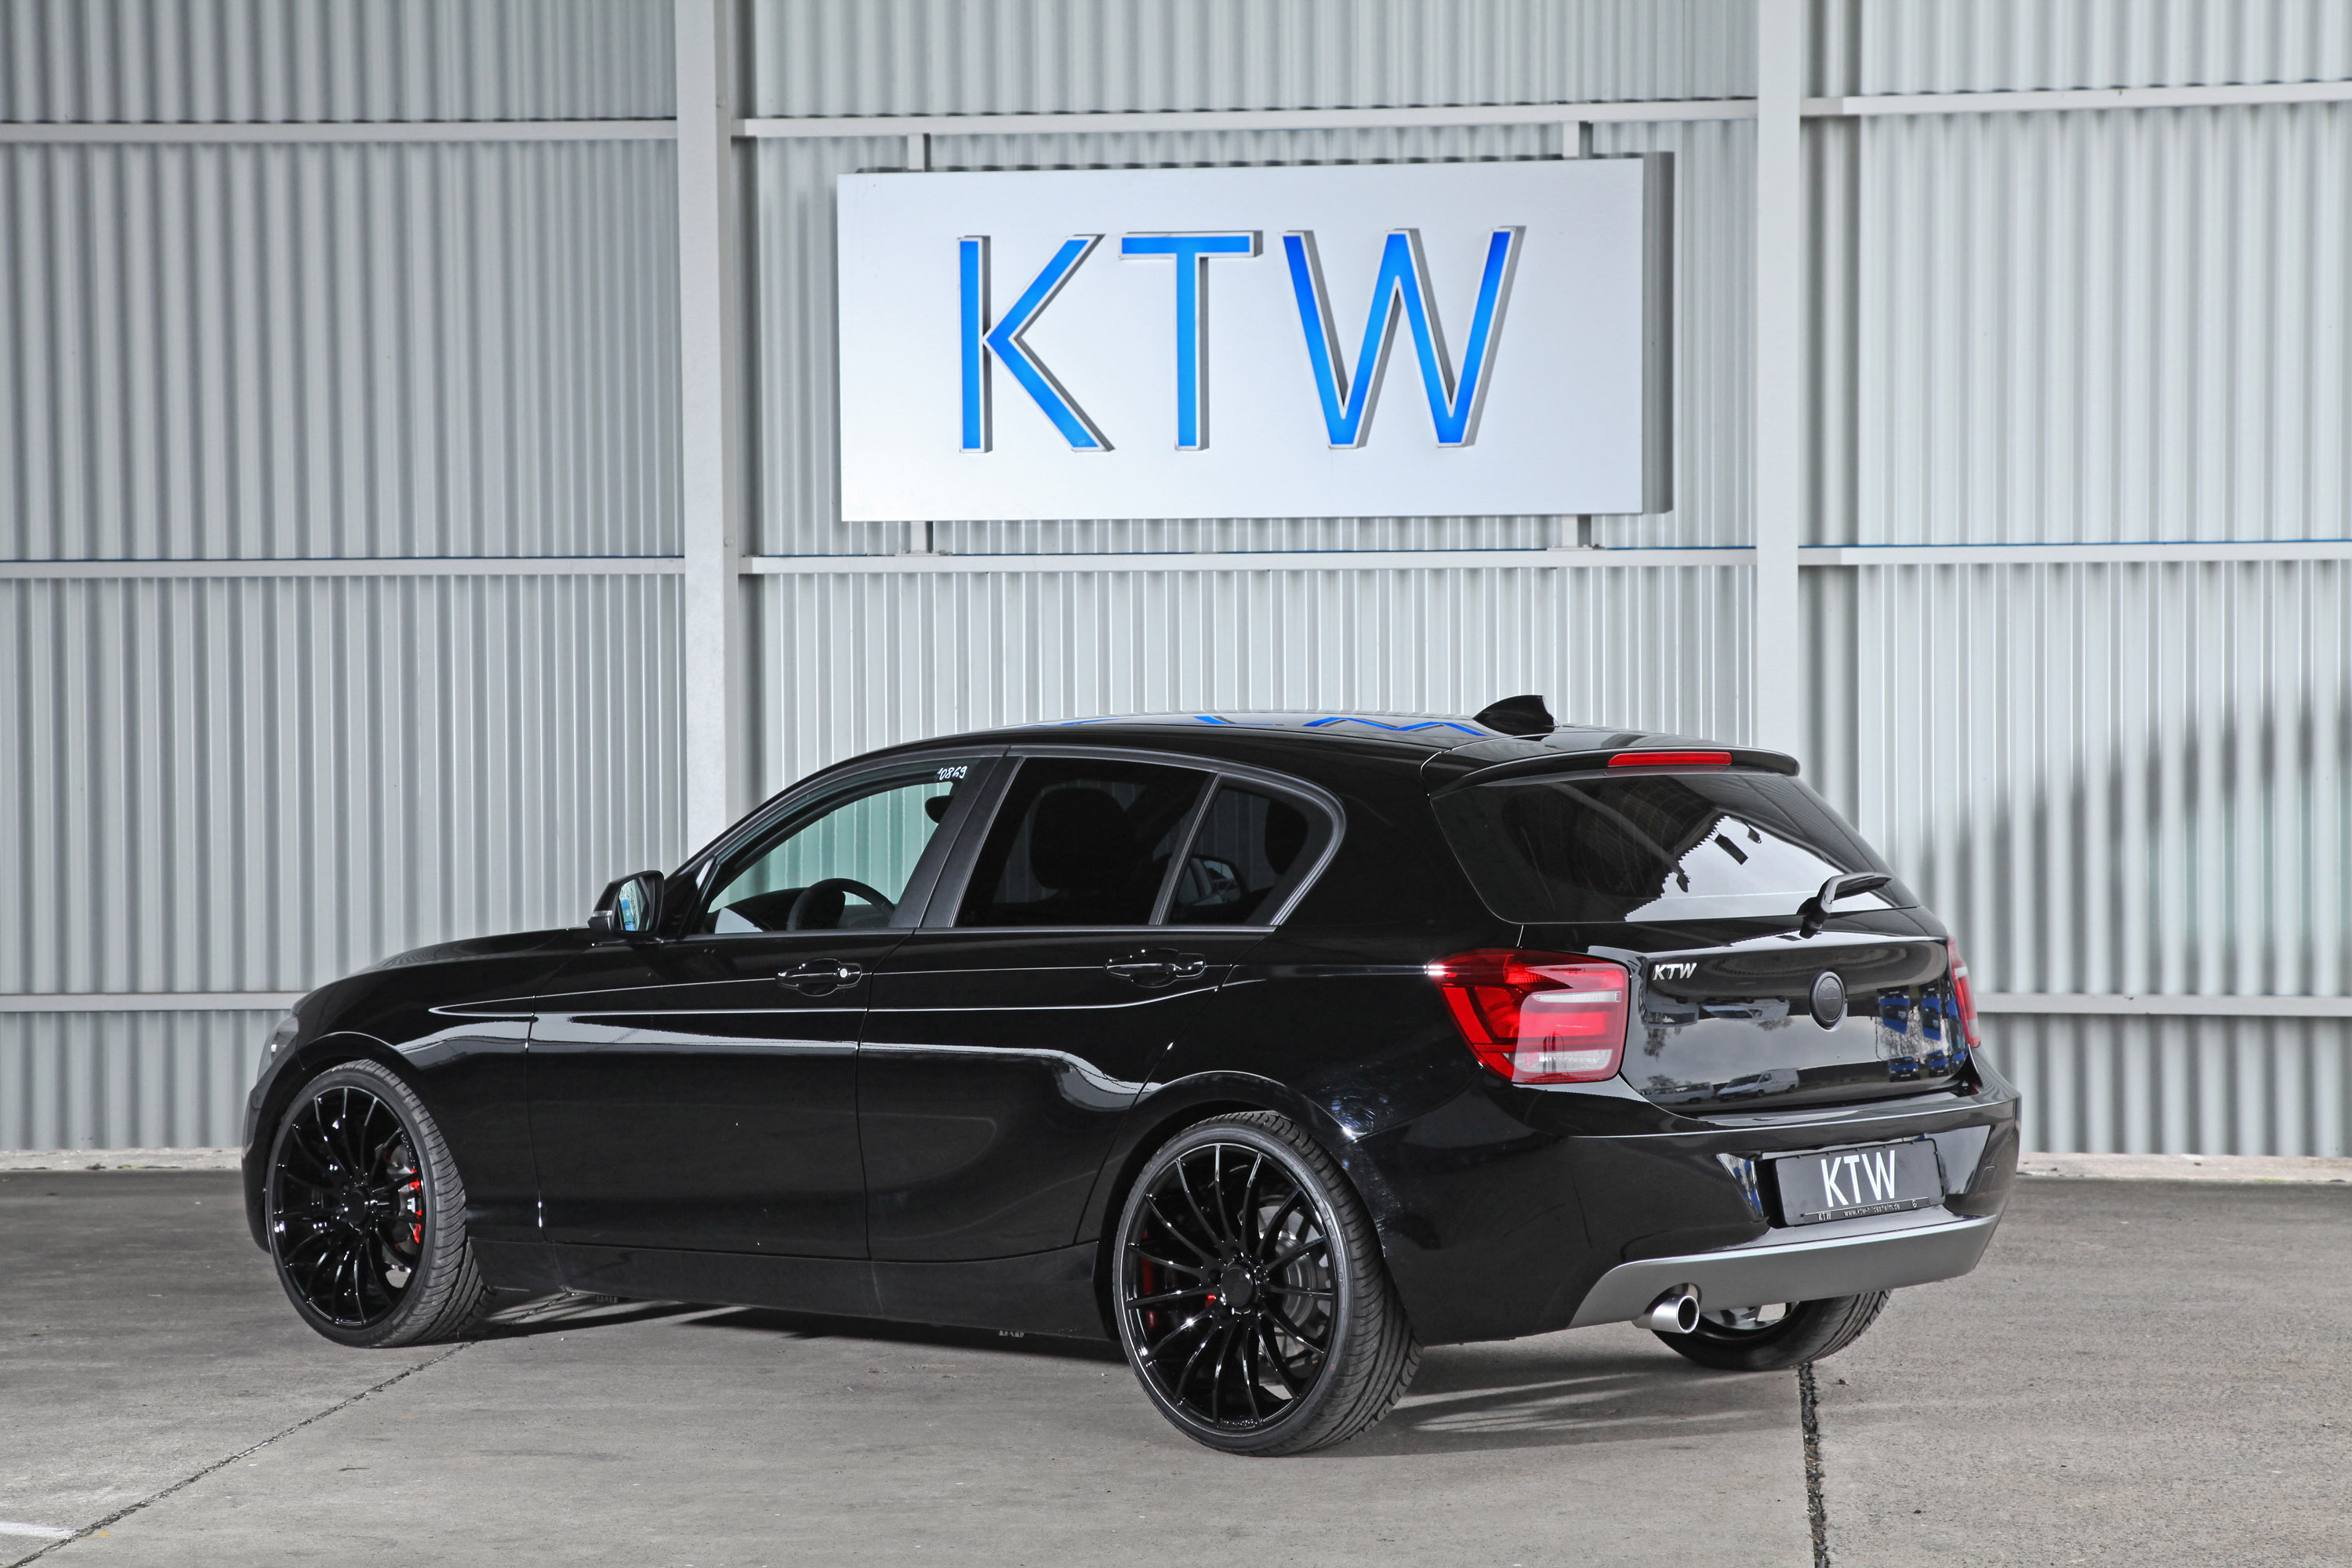 KTW BMW Series Black And White Picture - All black bmw